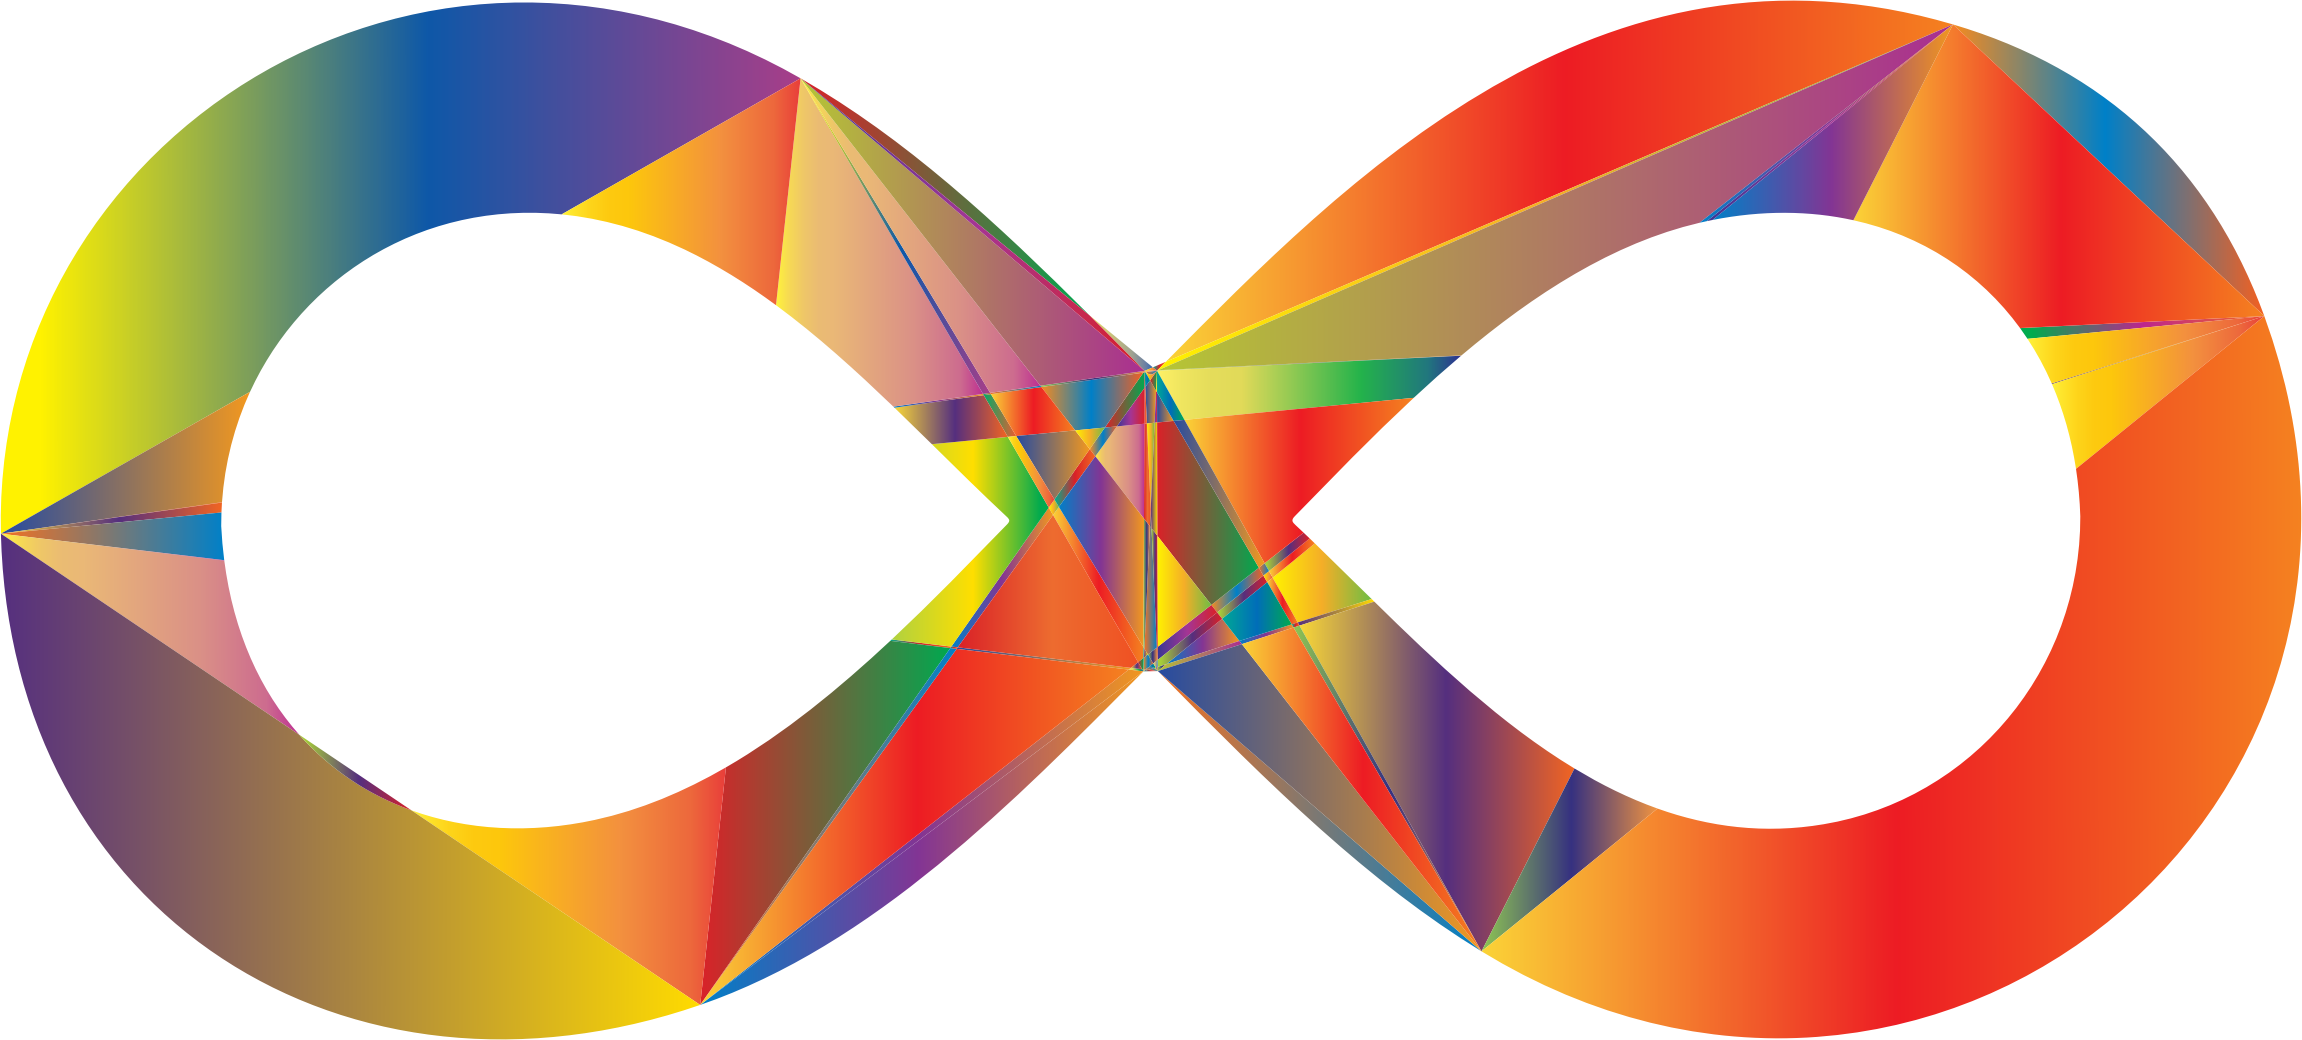 Infinity .png. Prismatic geometric sign icons